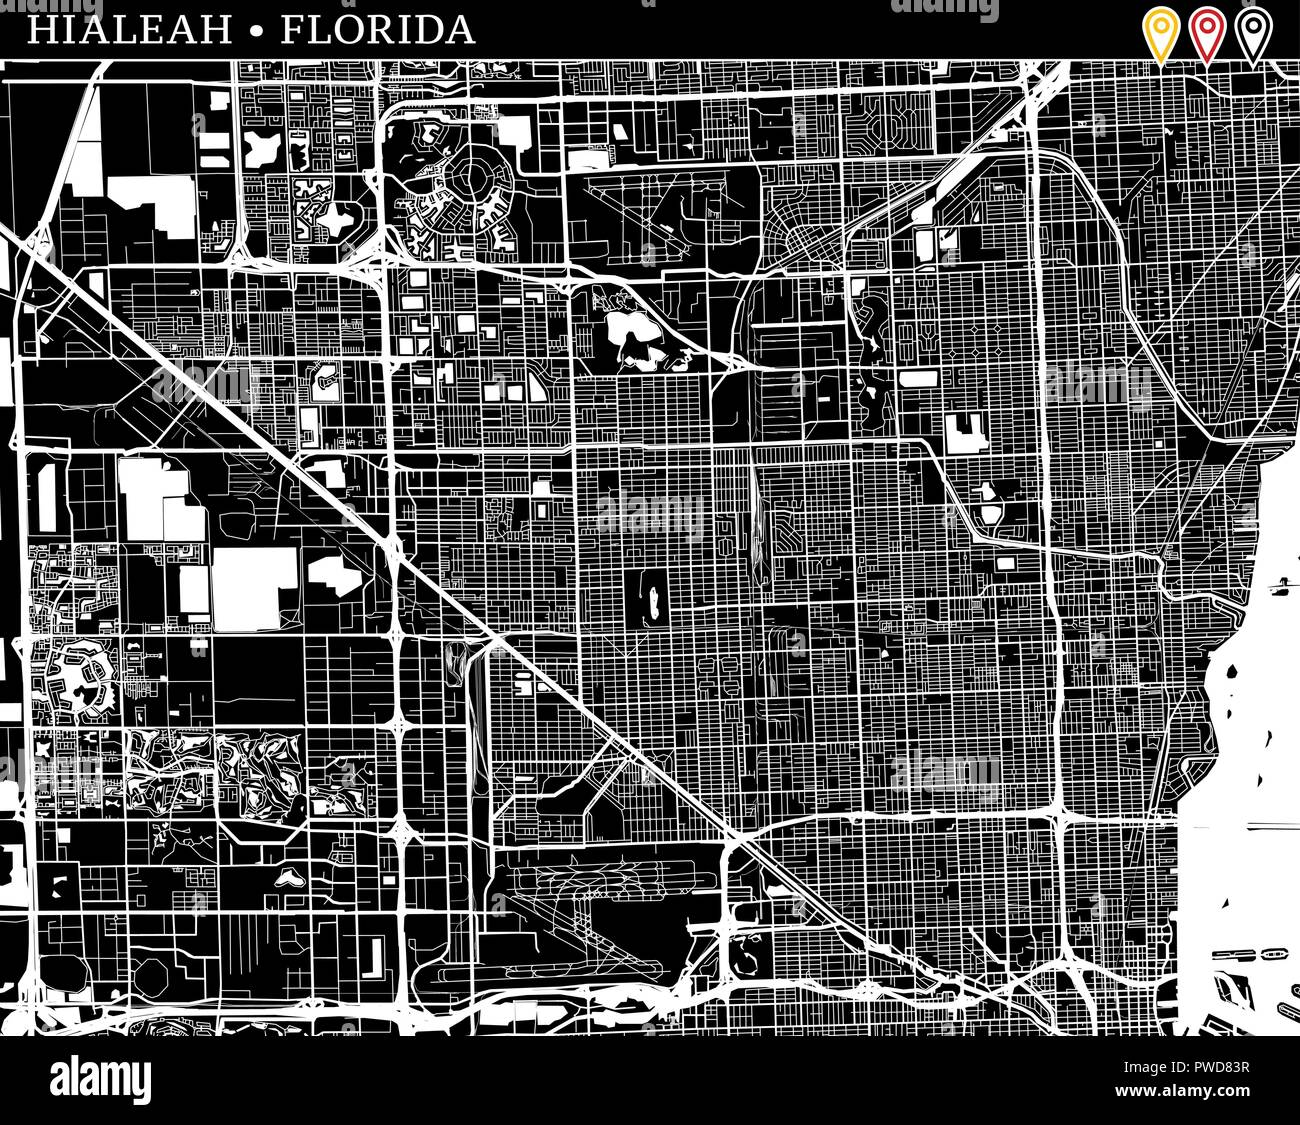 Hialeah Florida Map.Simple Map Of Hialeah Florida Usa Black And White Version For